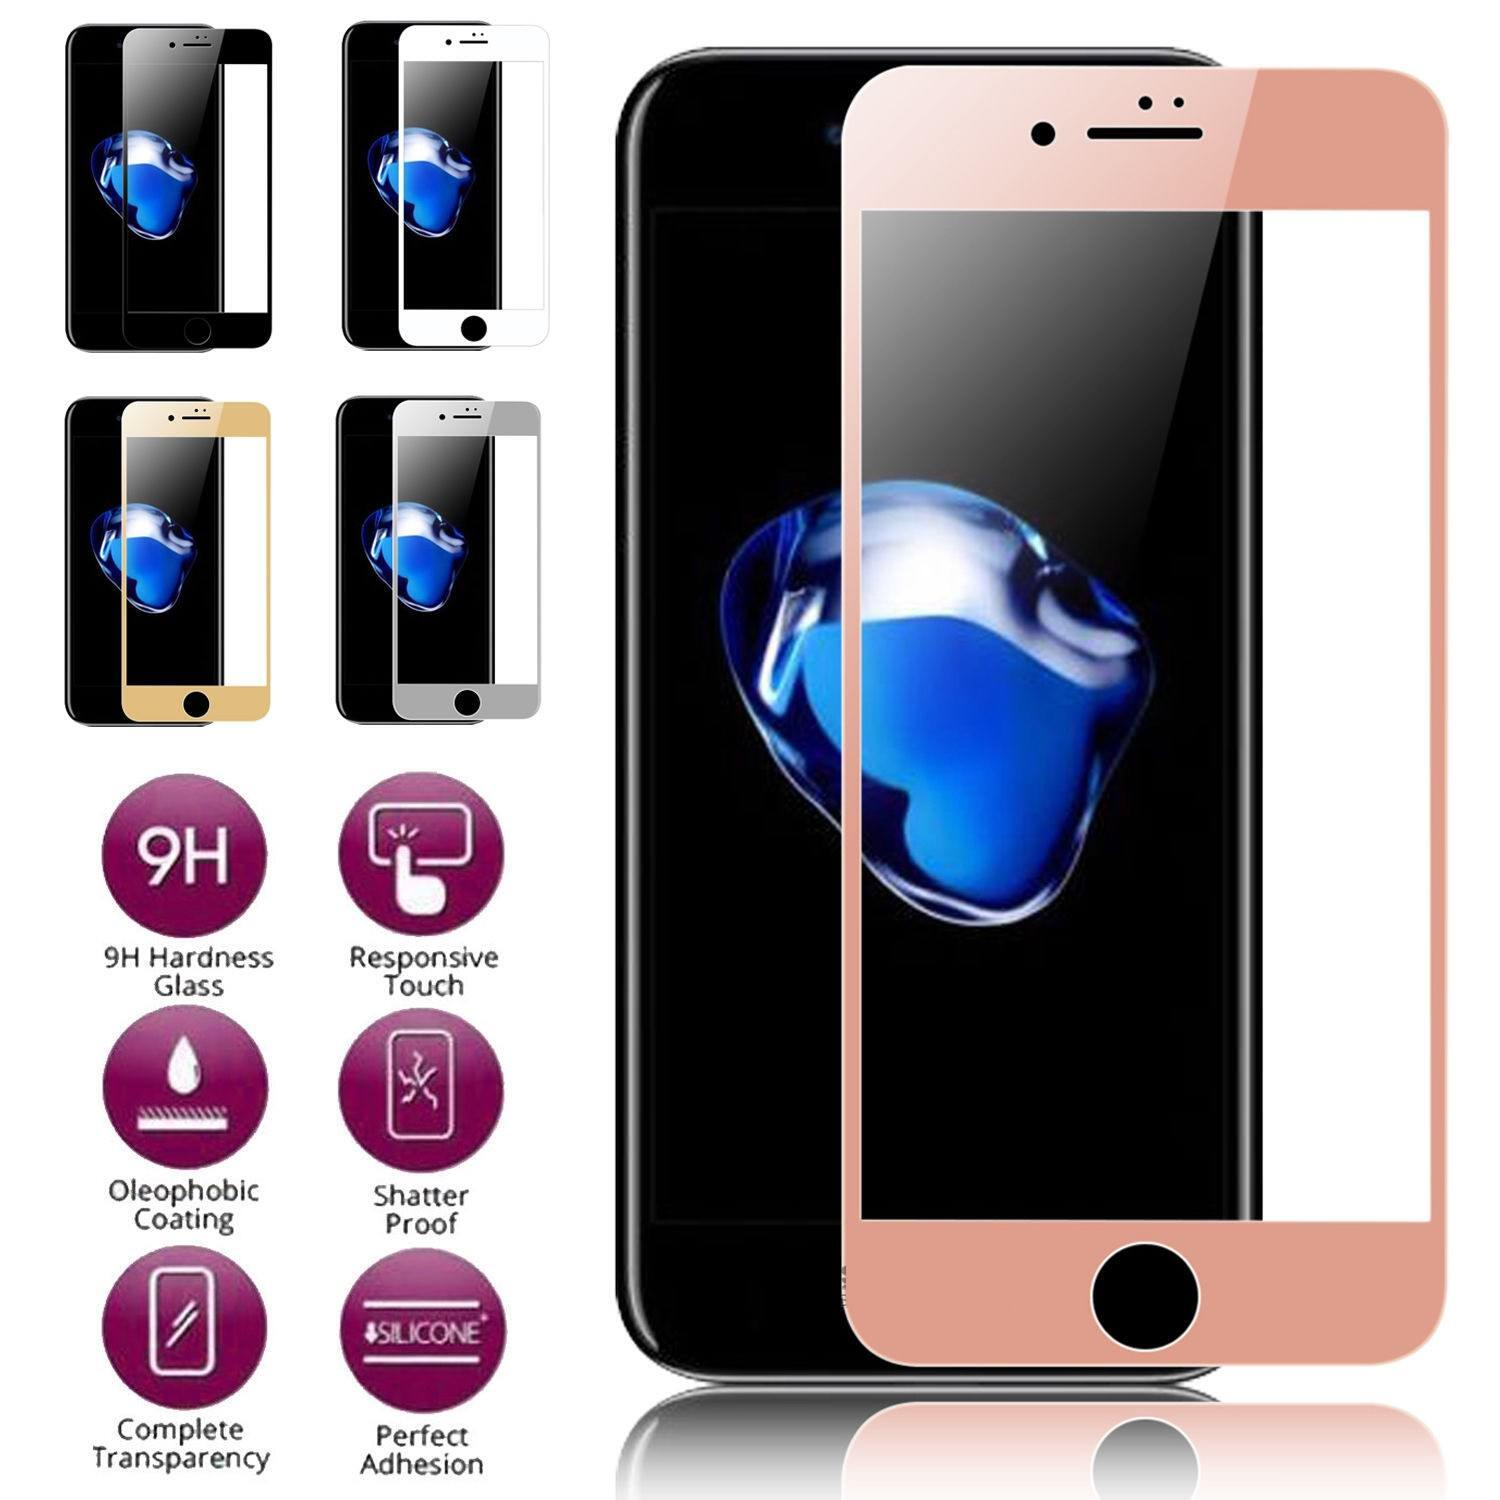 3D Curved Full Cover Tempered Glass Screen Protector for iPhone 8 / 8 Plus Cell Phone Accessories